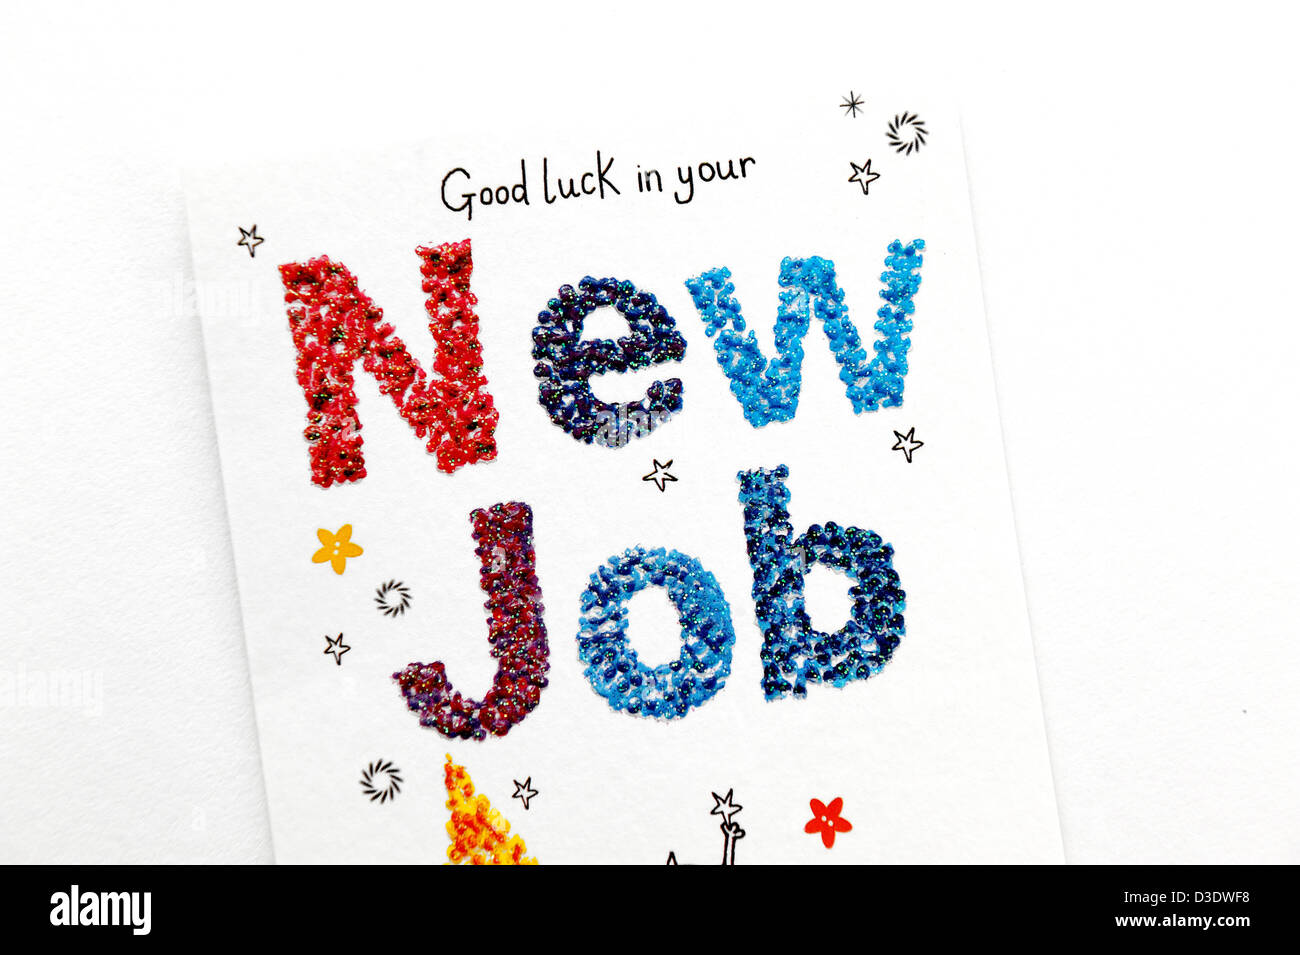 Good Luck In Your New Job Greeting Card Stock Photo 53780476 Alamy